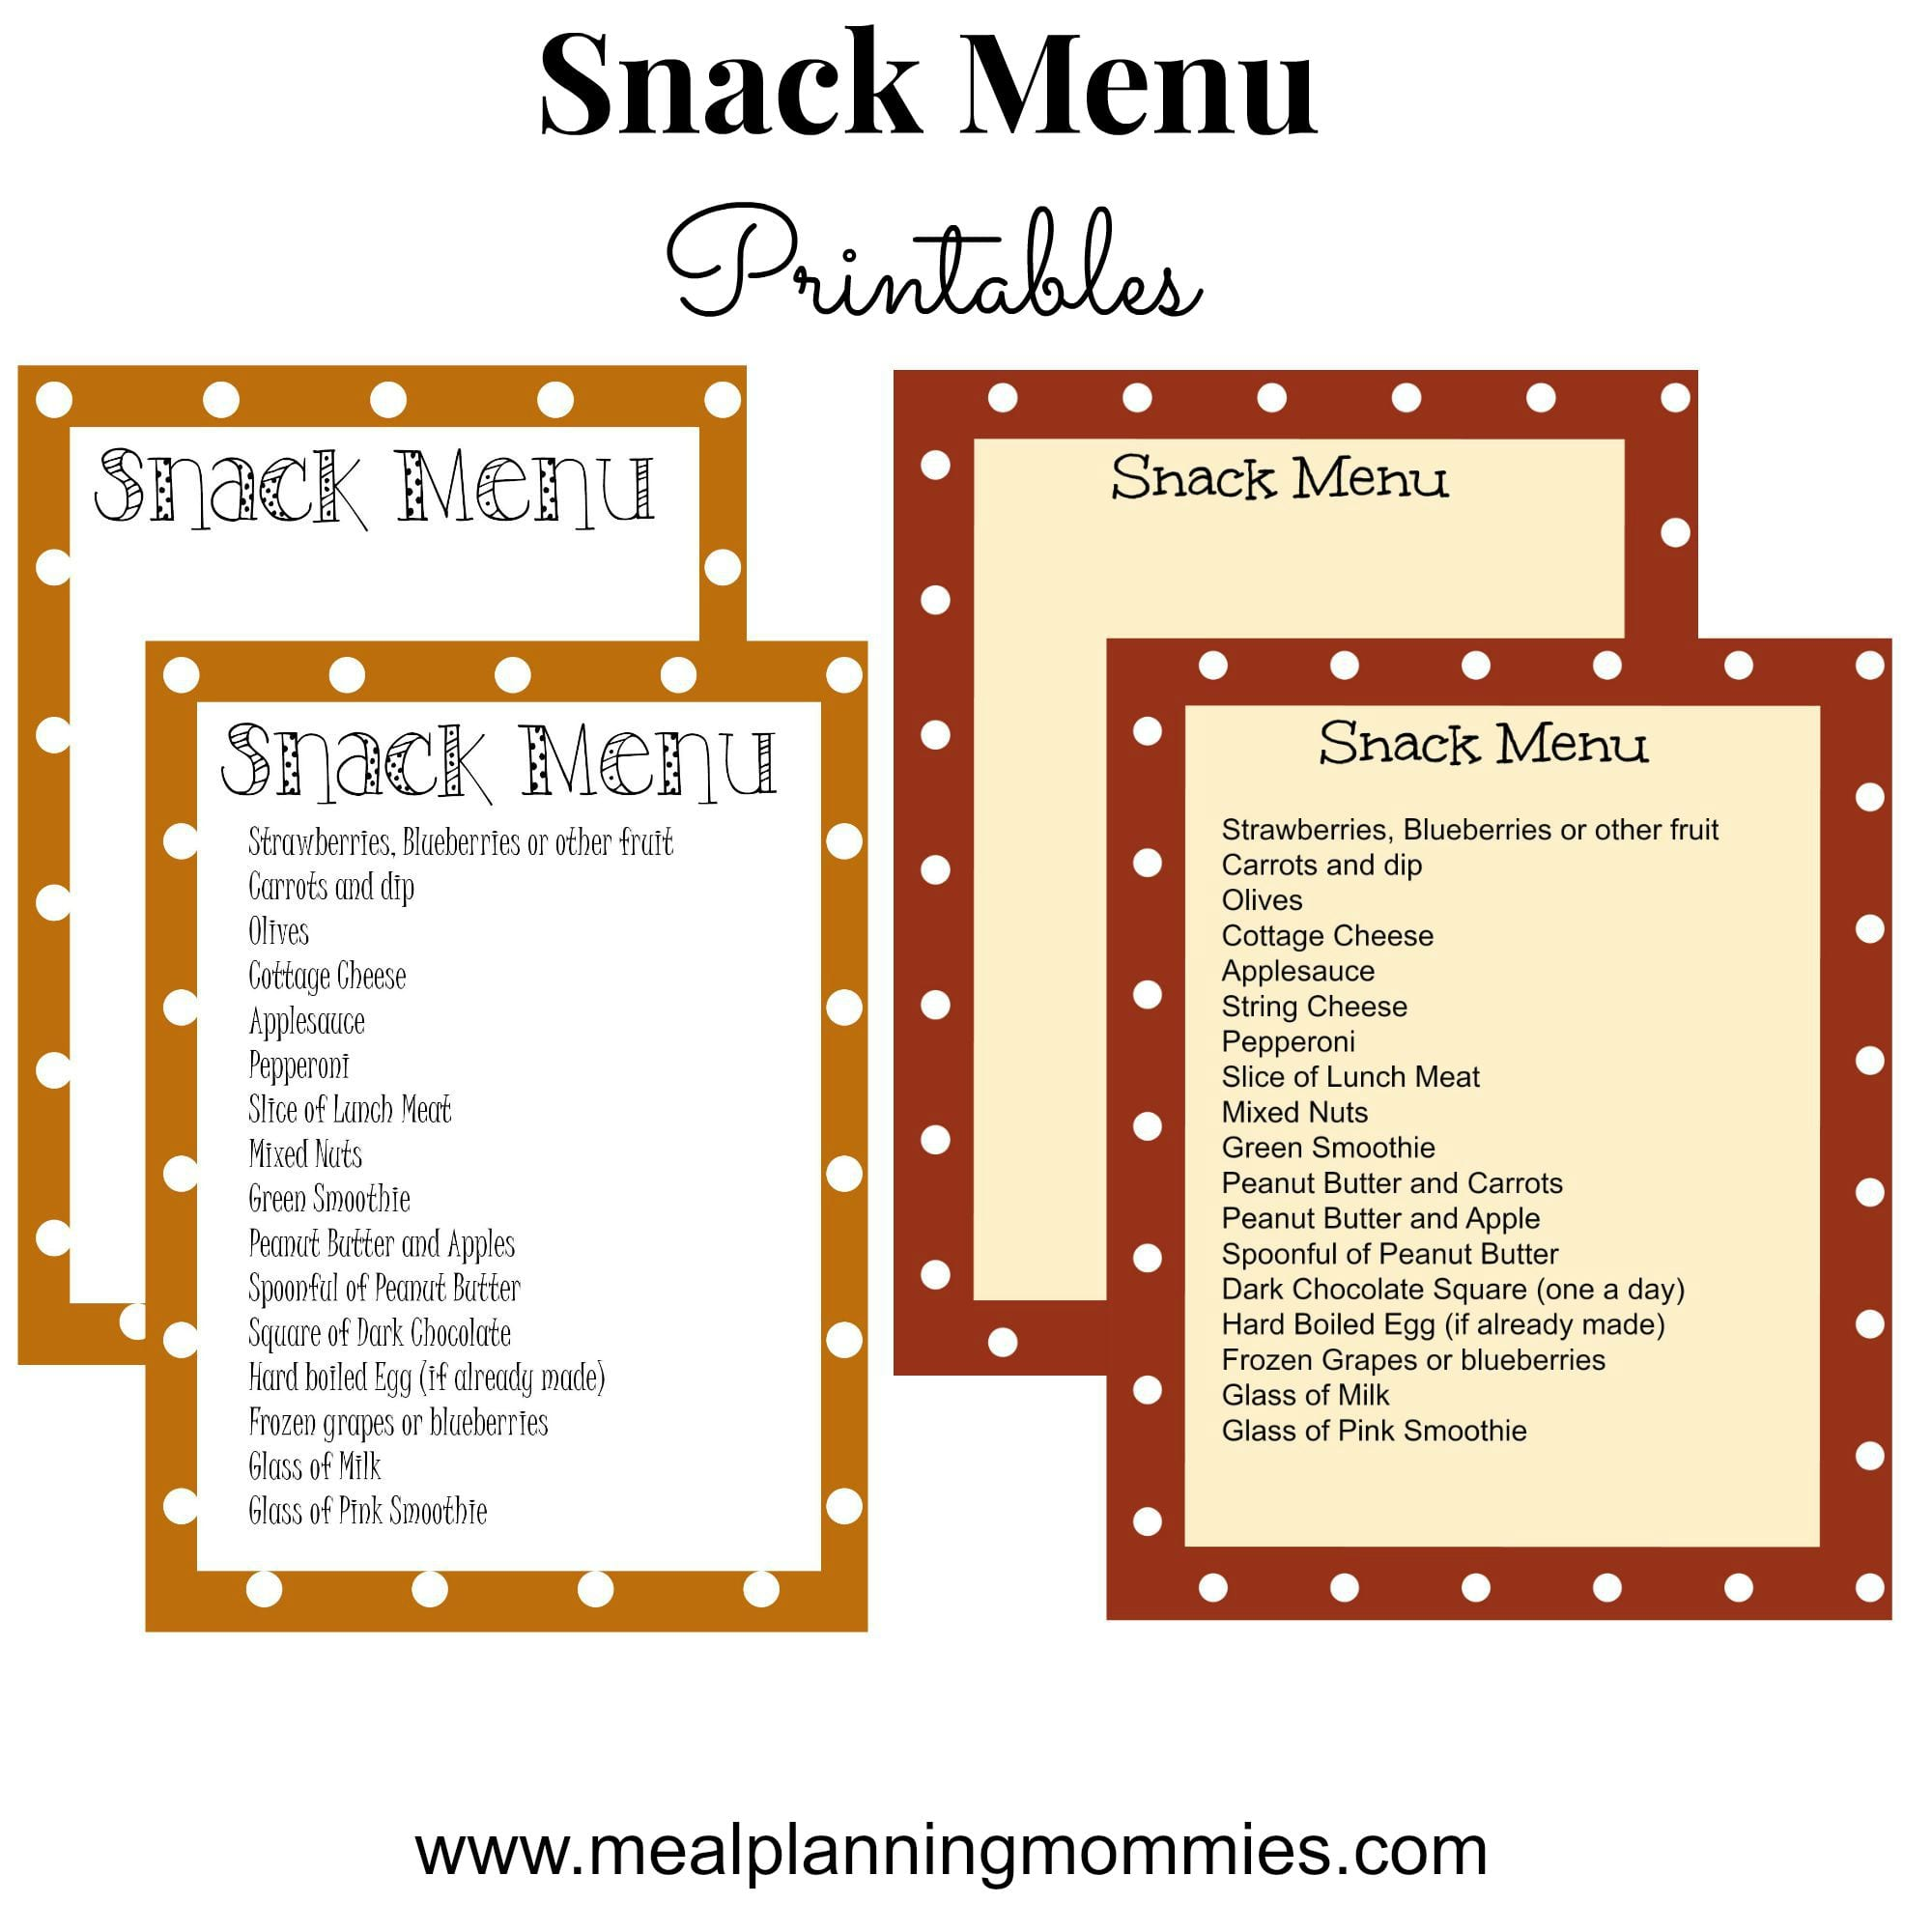 Snack Menu Printable